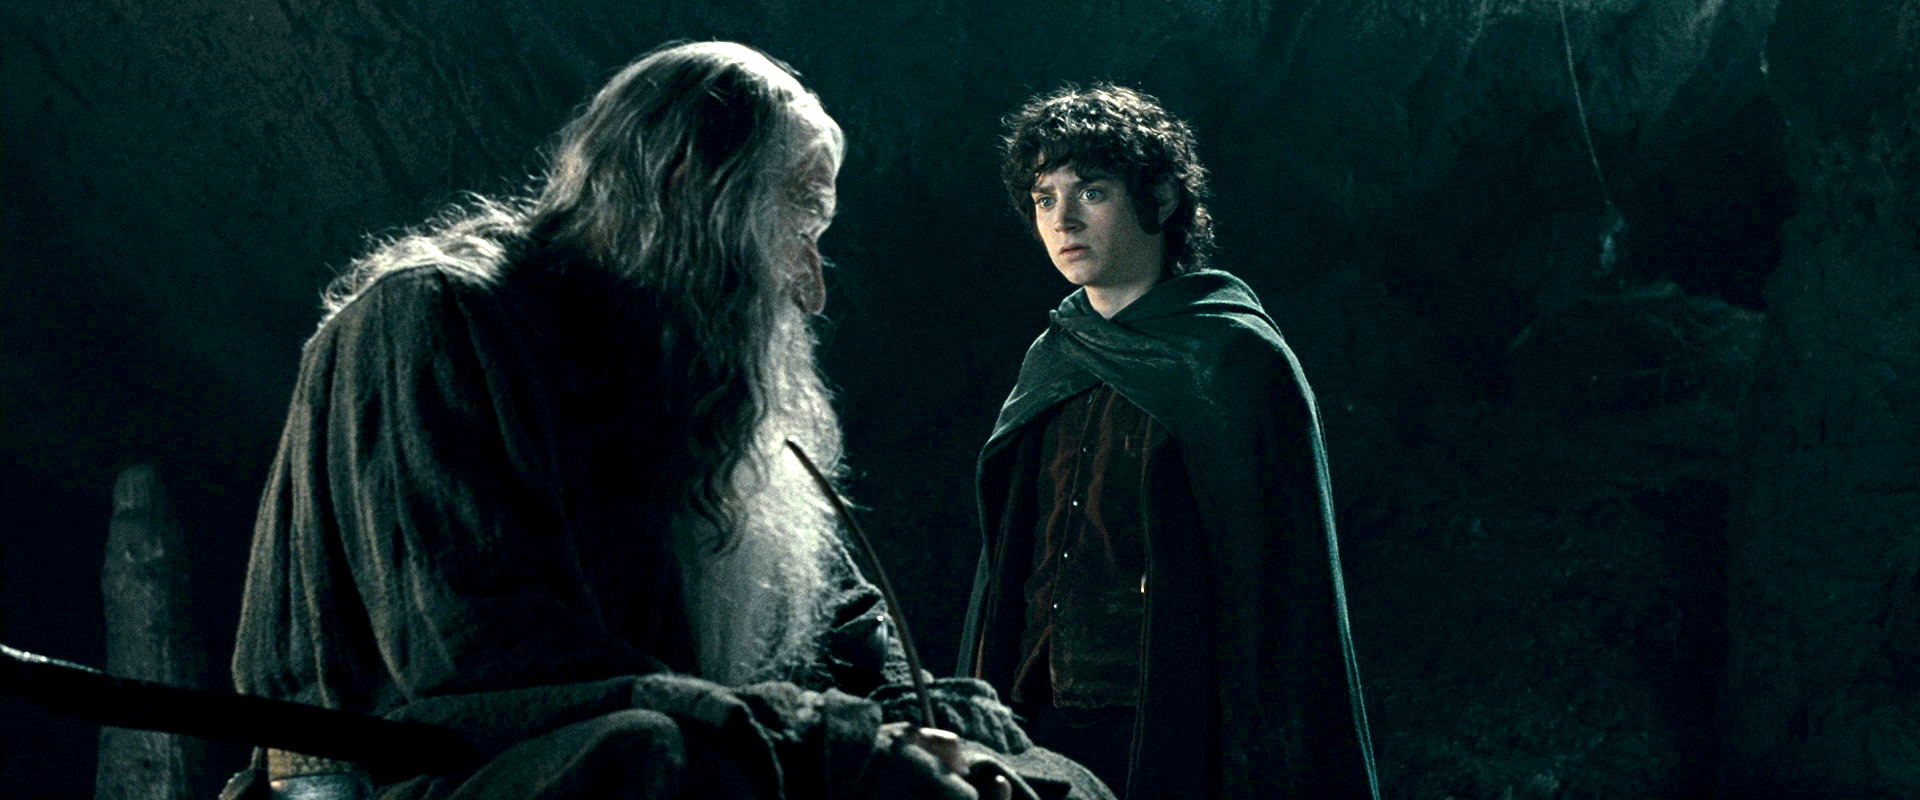 Frodo and Gandalf talk about how many who live to see such times wish they had not in the Fellowship of the Ring.